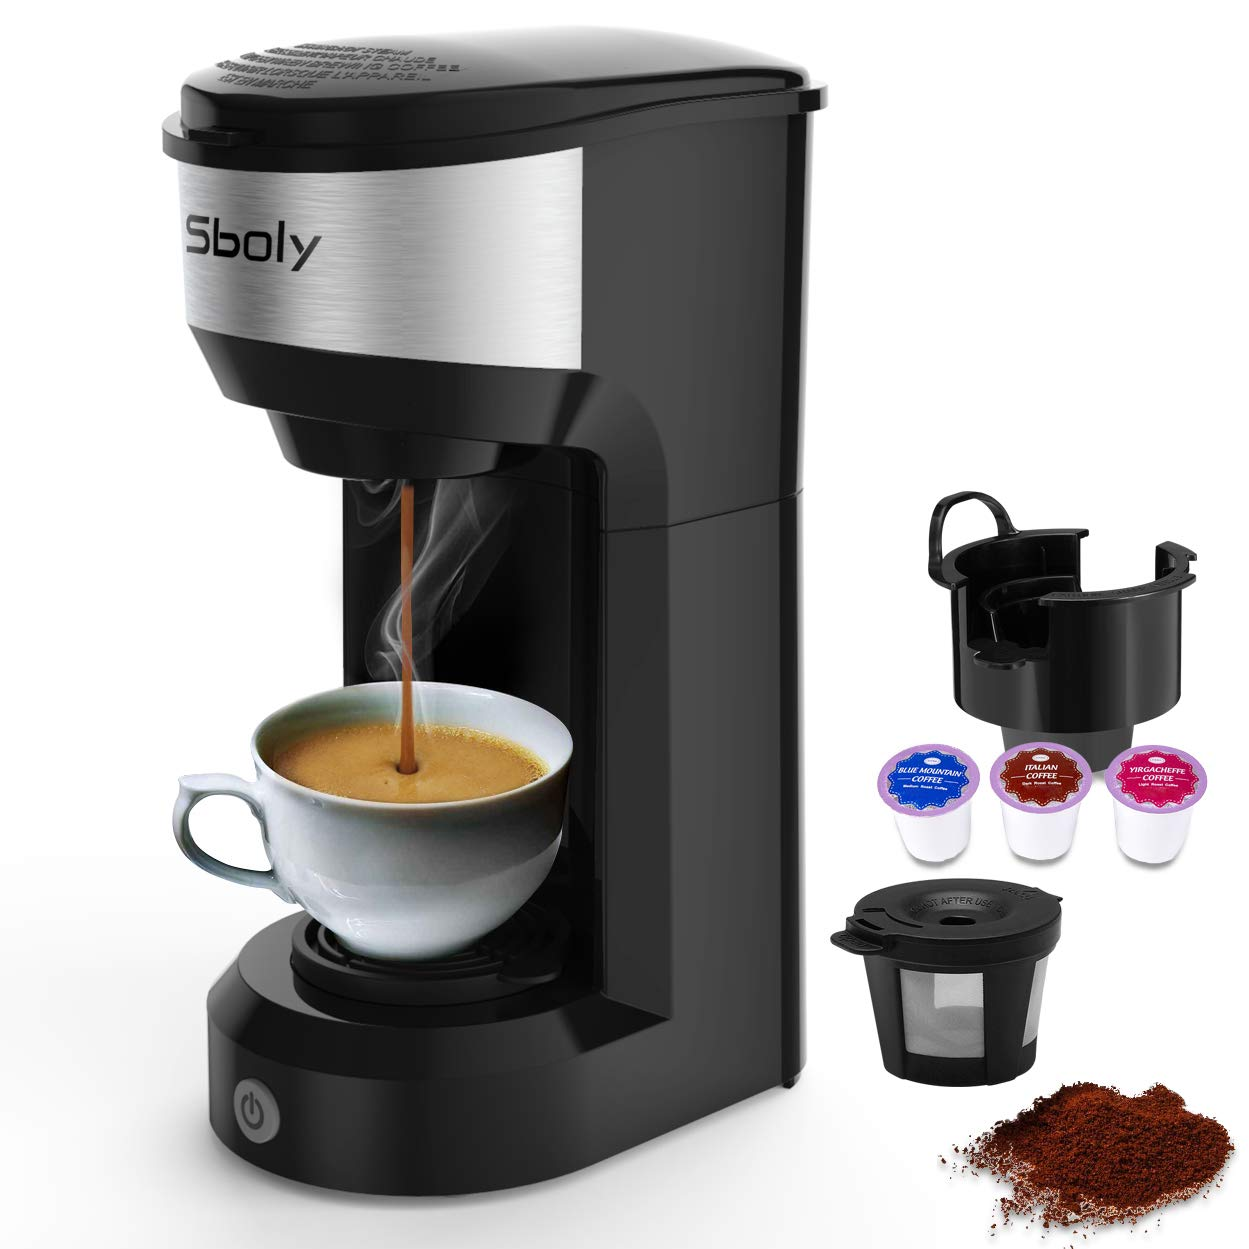 Sboly Single Serve Coffee Maker for K Cup Pods & Coffee Grounds, Small Coffee Machine Brewer with 90s Quick Brewing Technology, Compact & Super Lightweight Design for Travel, Black by Sboly (Image #1)